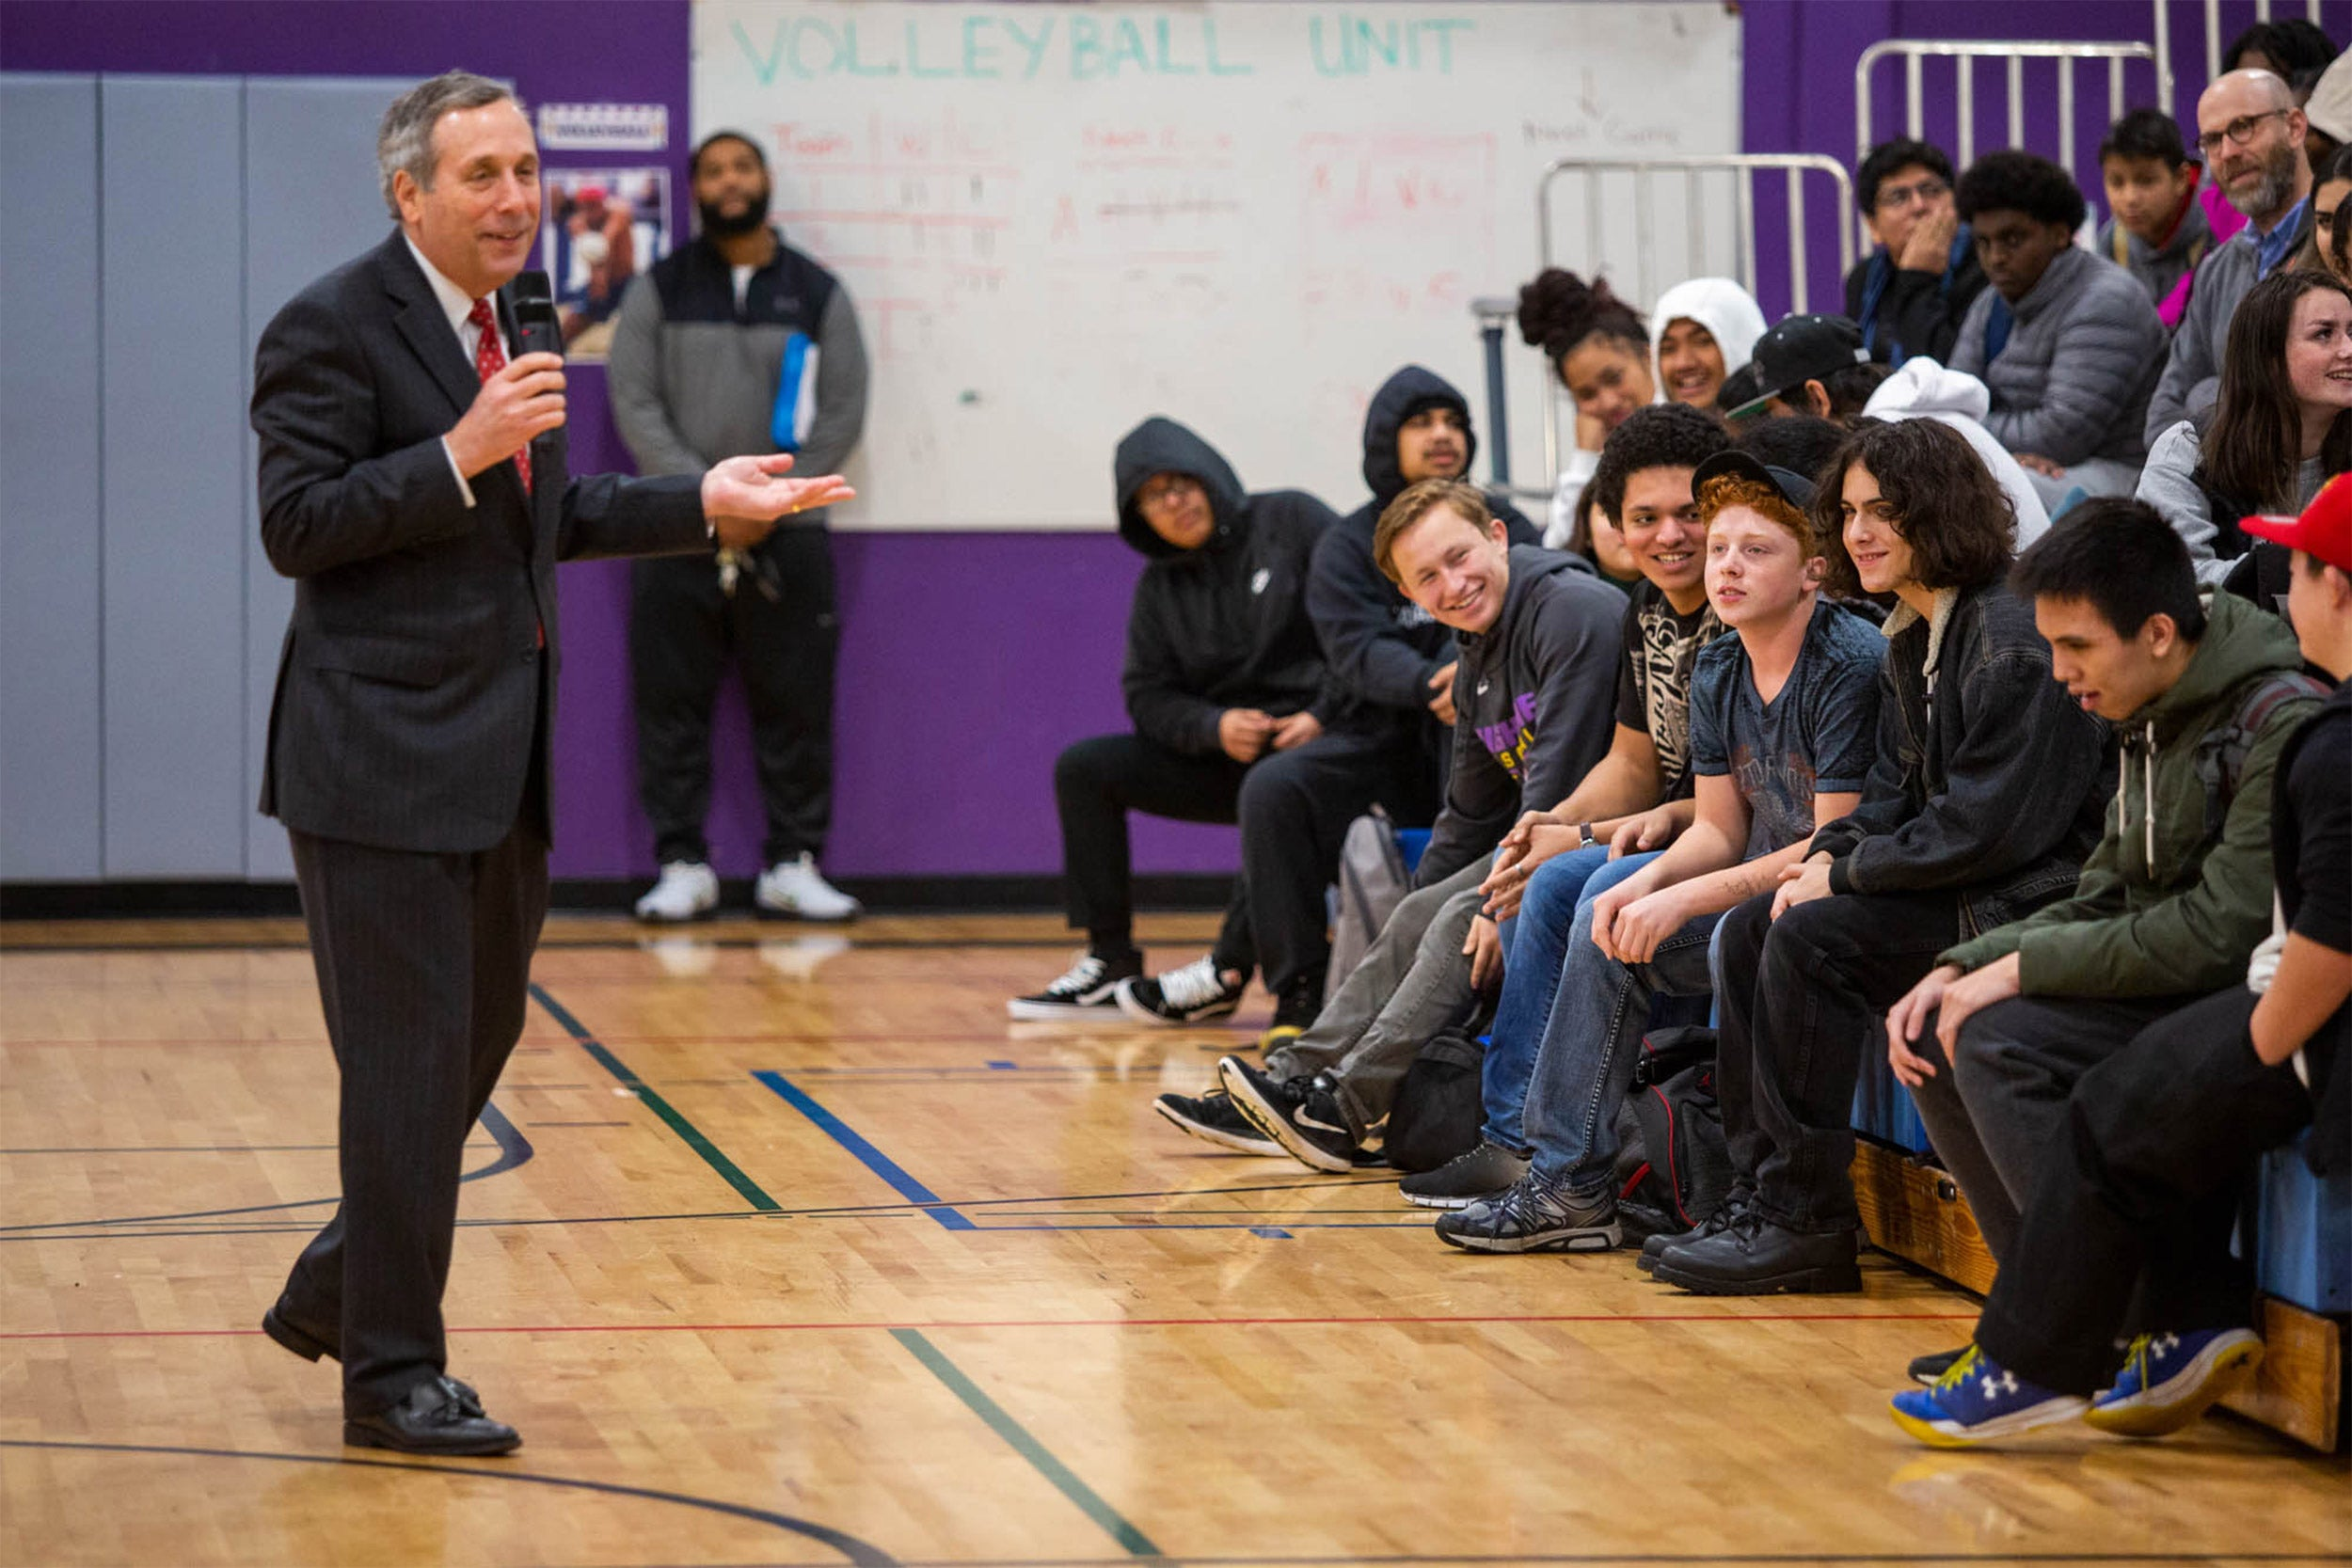 President Bacow speaking to students.